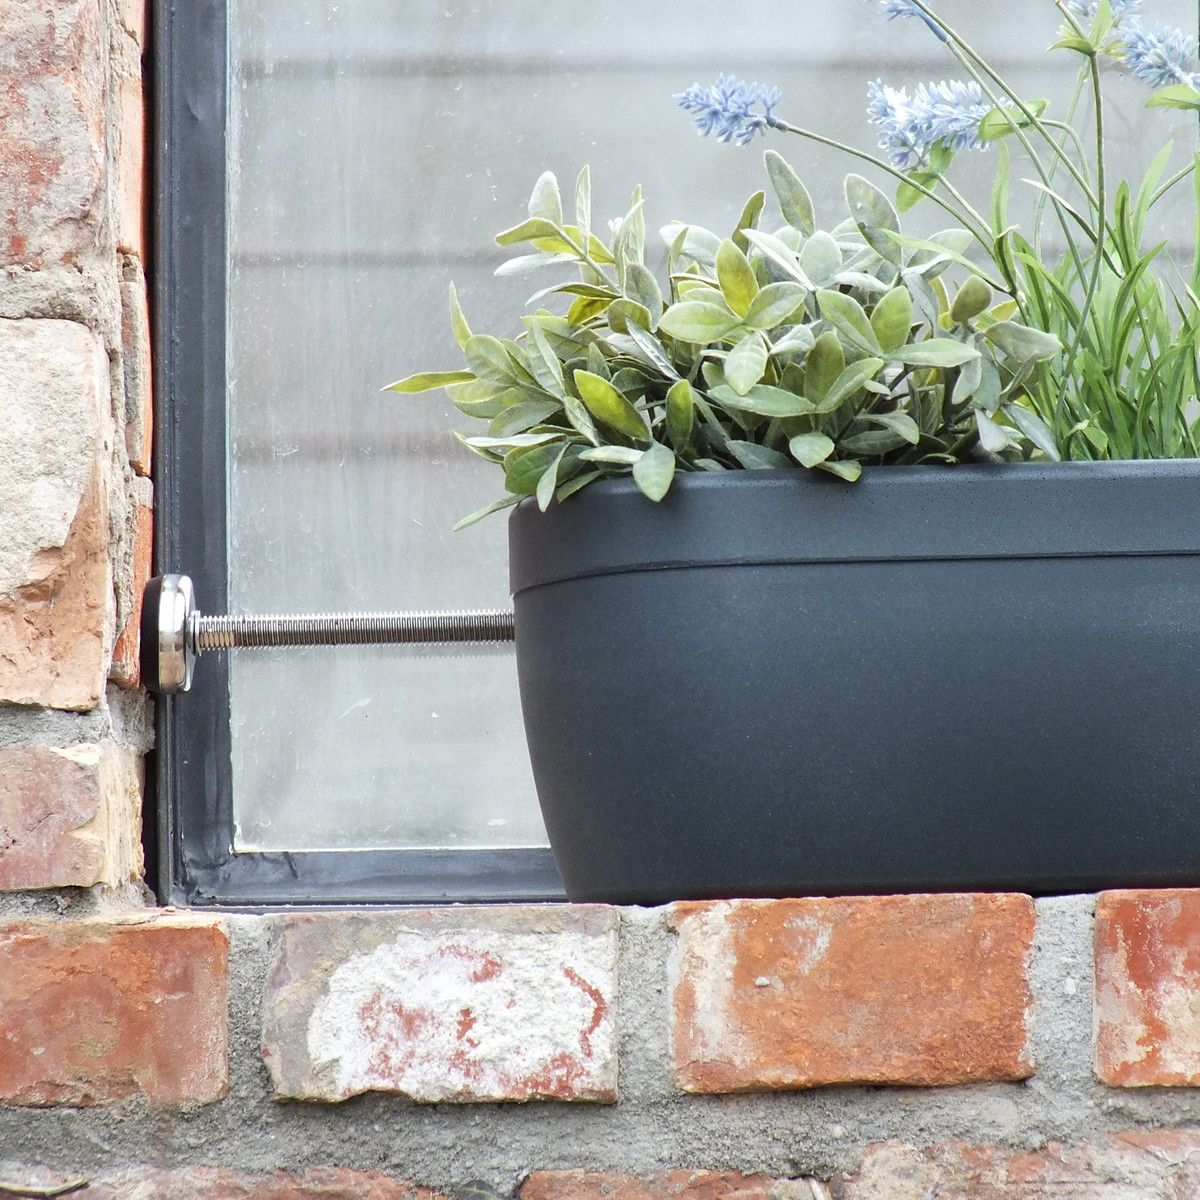 Balkonkästen Terracotta Rephorm Windowgreen Window Sill Flower Box Terracotta